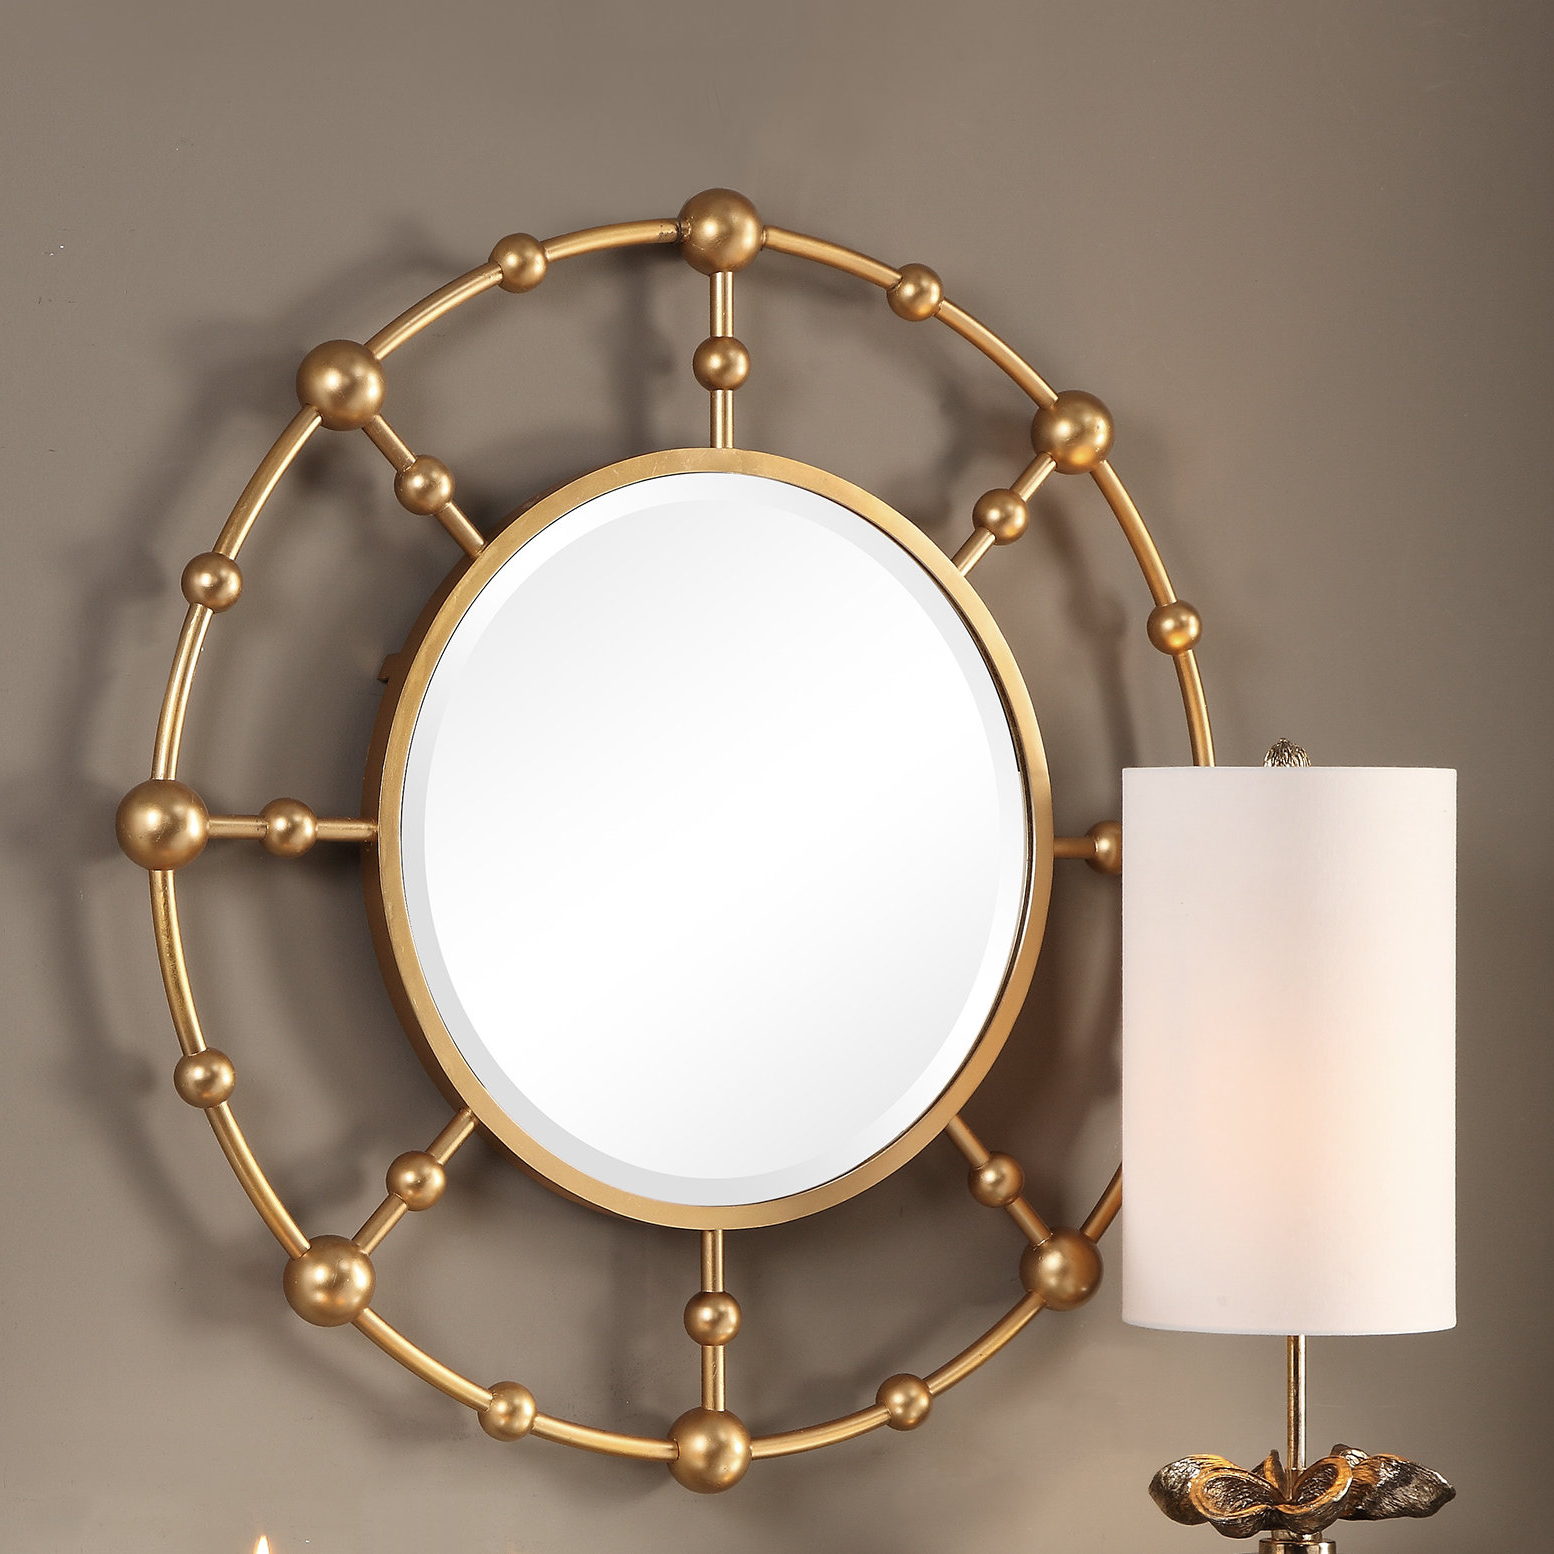 Latest Matthias Round Accent Mirrors With Regard To Burrell Round Accent Mirror (View 4 of 20)